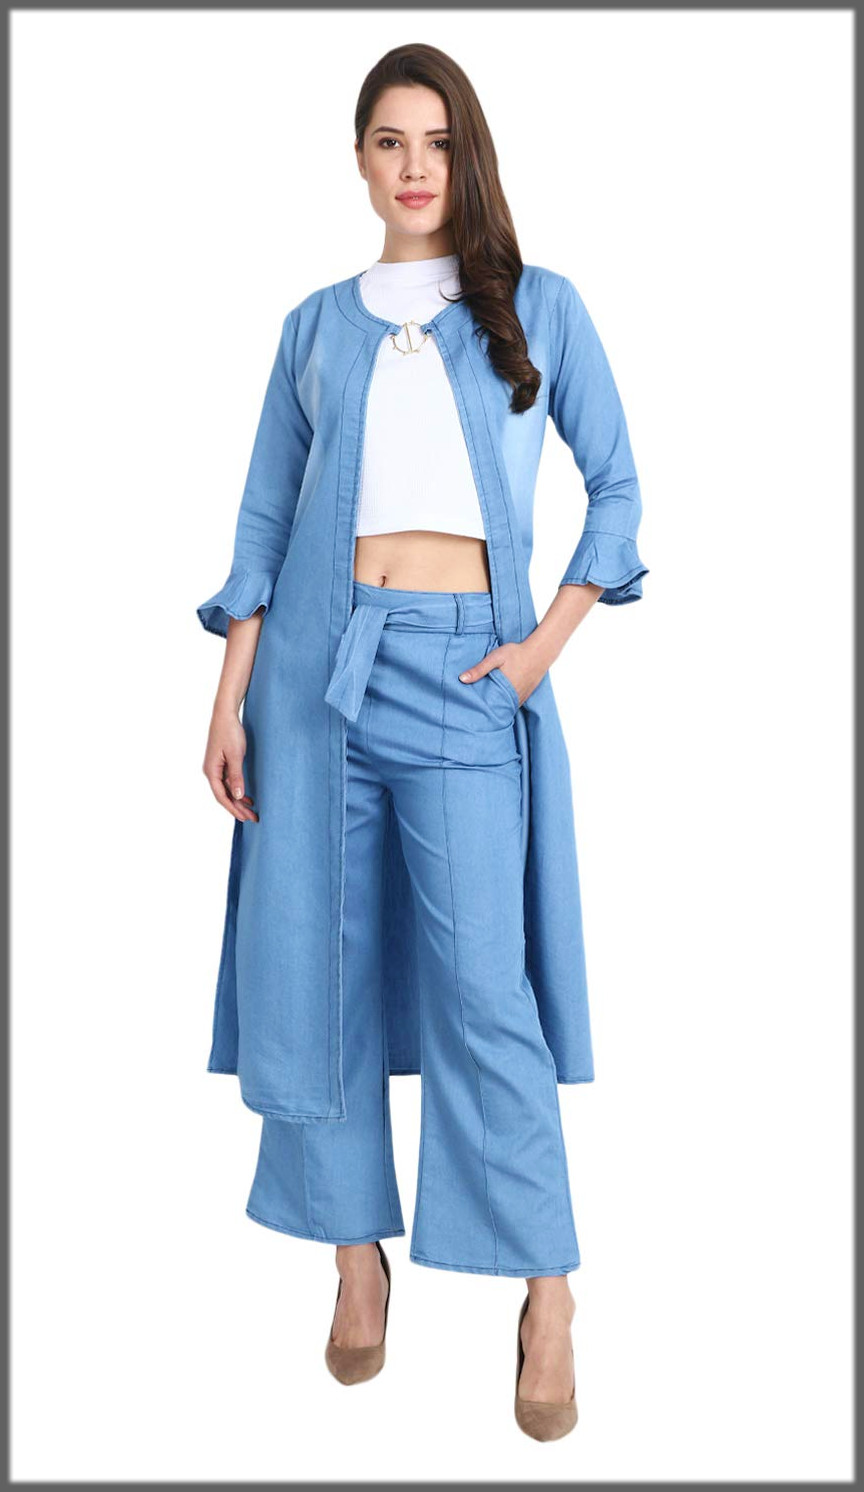 western denim outfit with long jacket